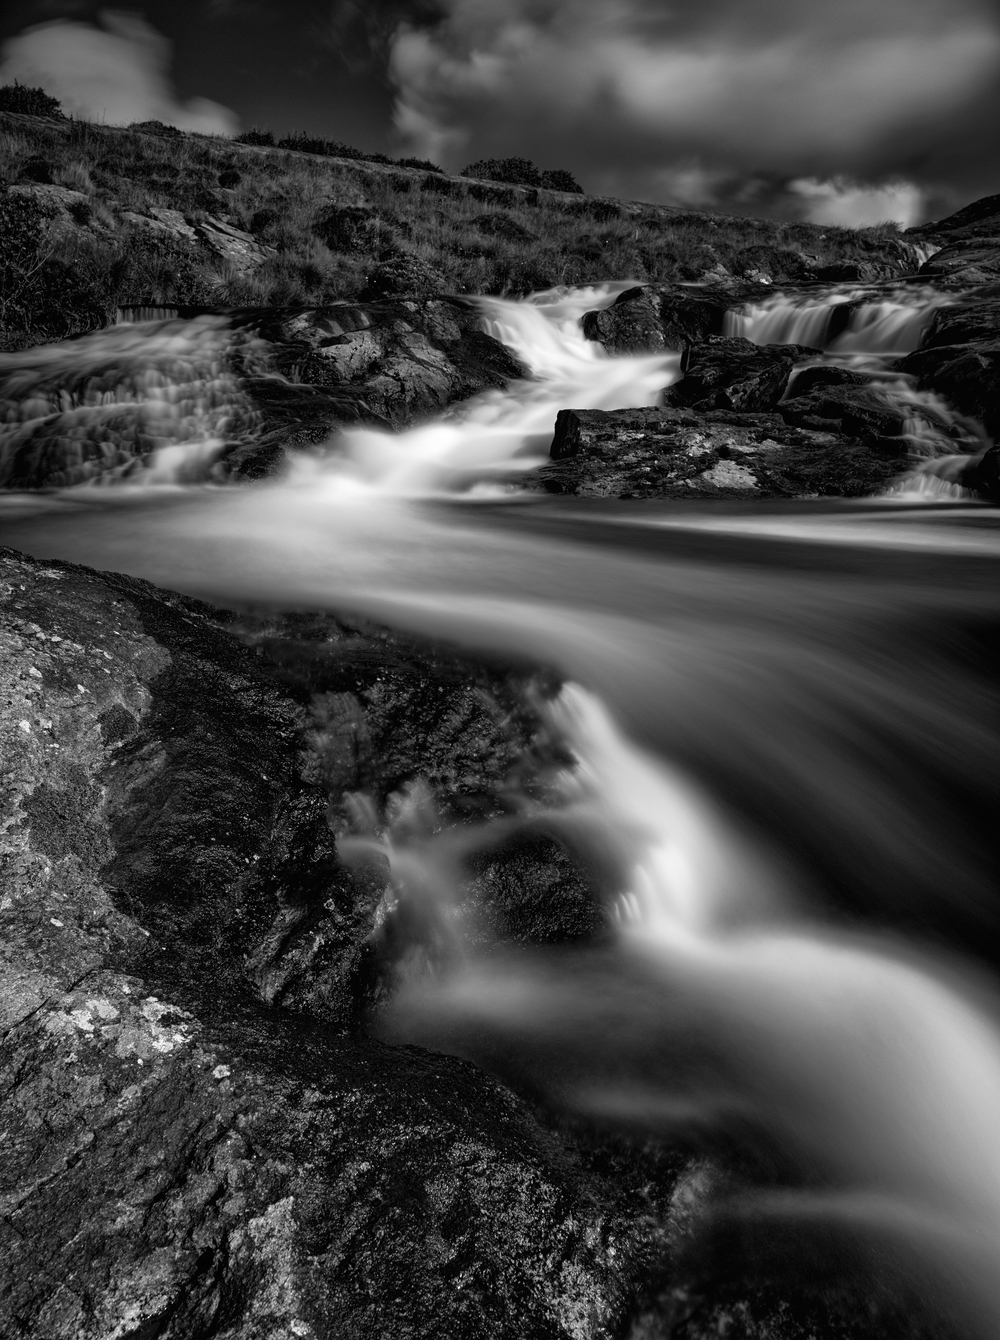 The snaking water of Amhuinnsuidhe Falls, North Harris.